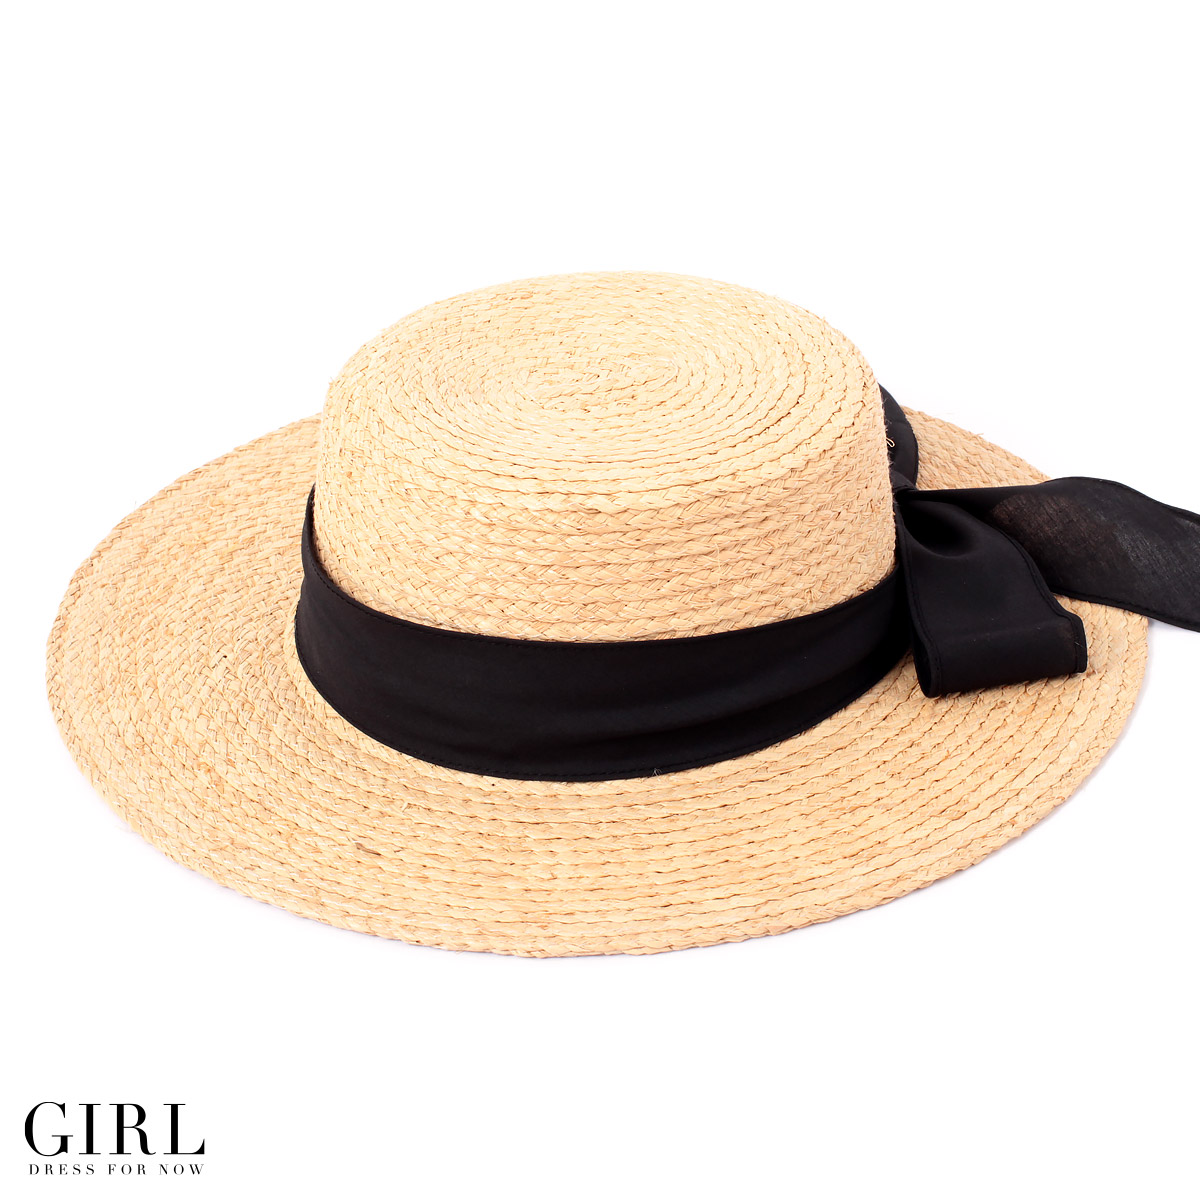 Big hat straw hats women s UV cut straw hat brim wide size outdoor gift Hat  UV measures spring summer fall winter shade women s solid adult dc97888eac8